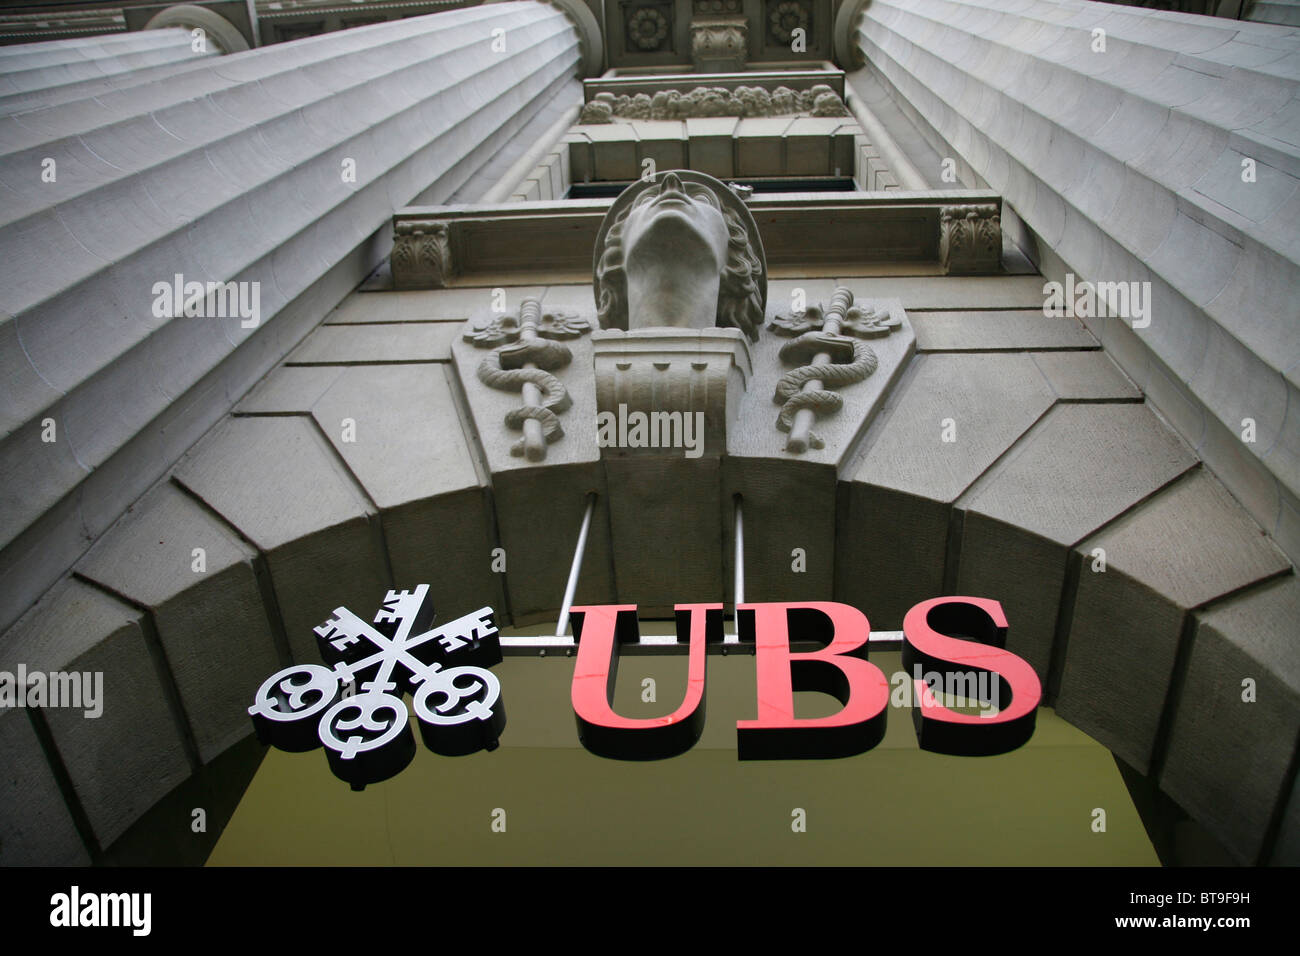 UBS branch, Bahnhofstrasse in Zurich, Switzerland, Europe - Stock Image